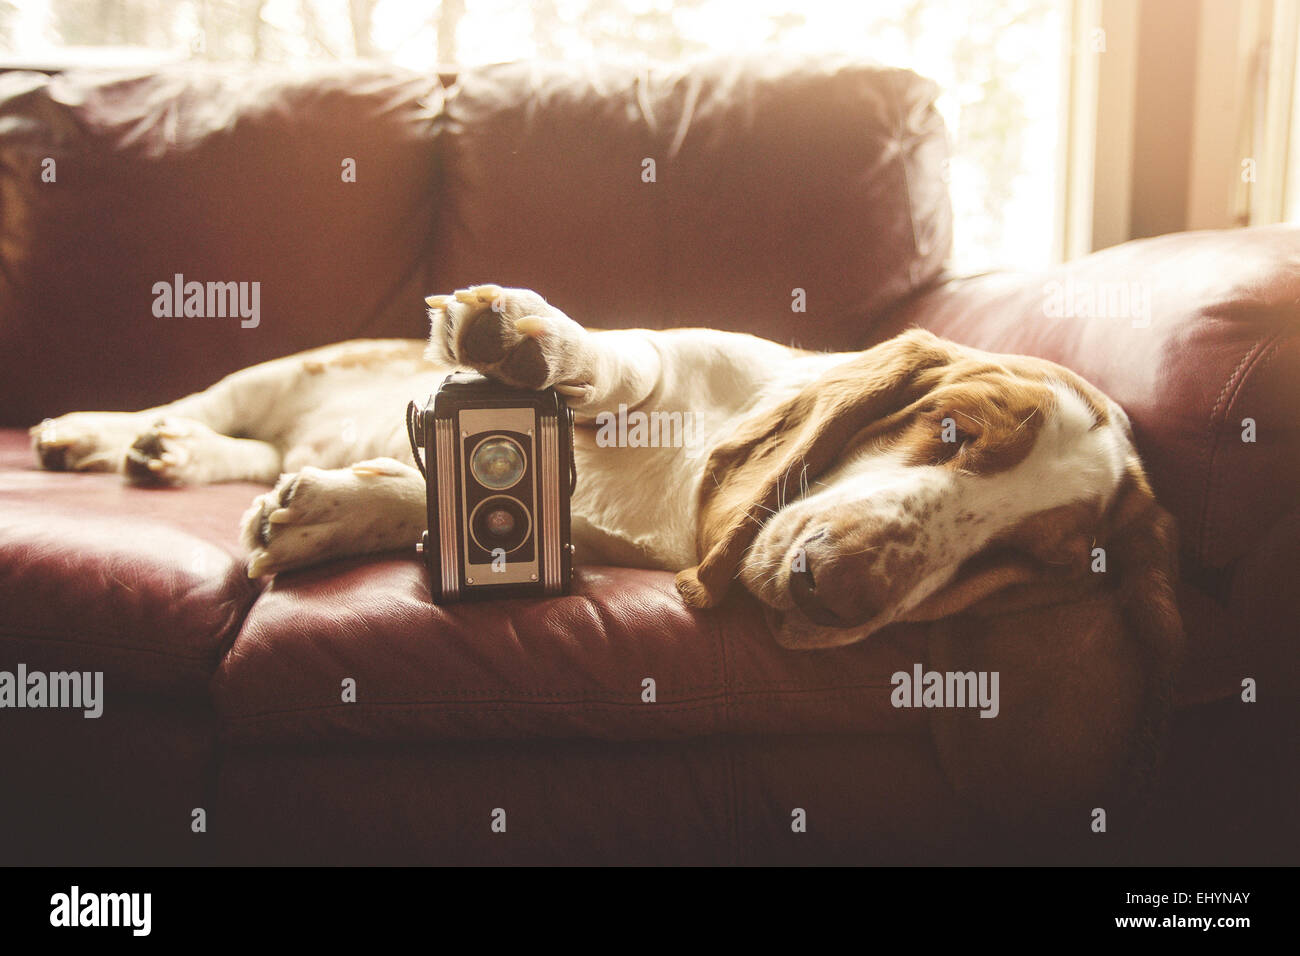 Dog lying on the sofa with a vintage camera - Stock Image